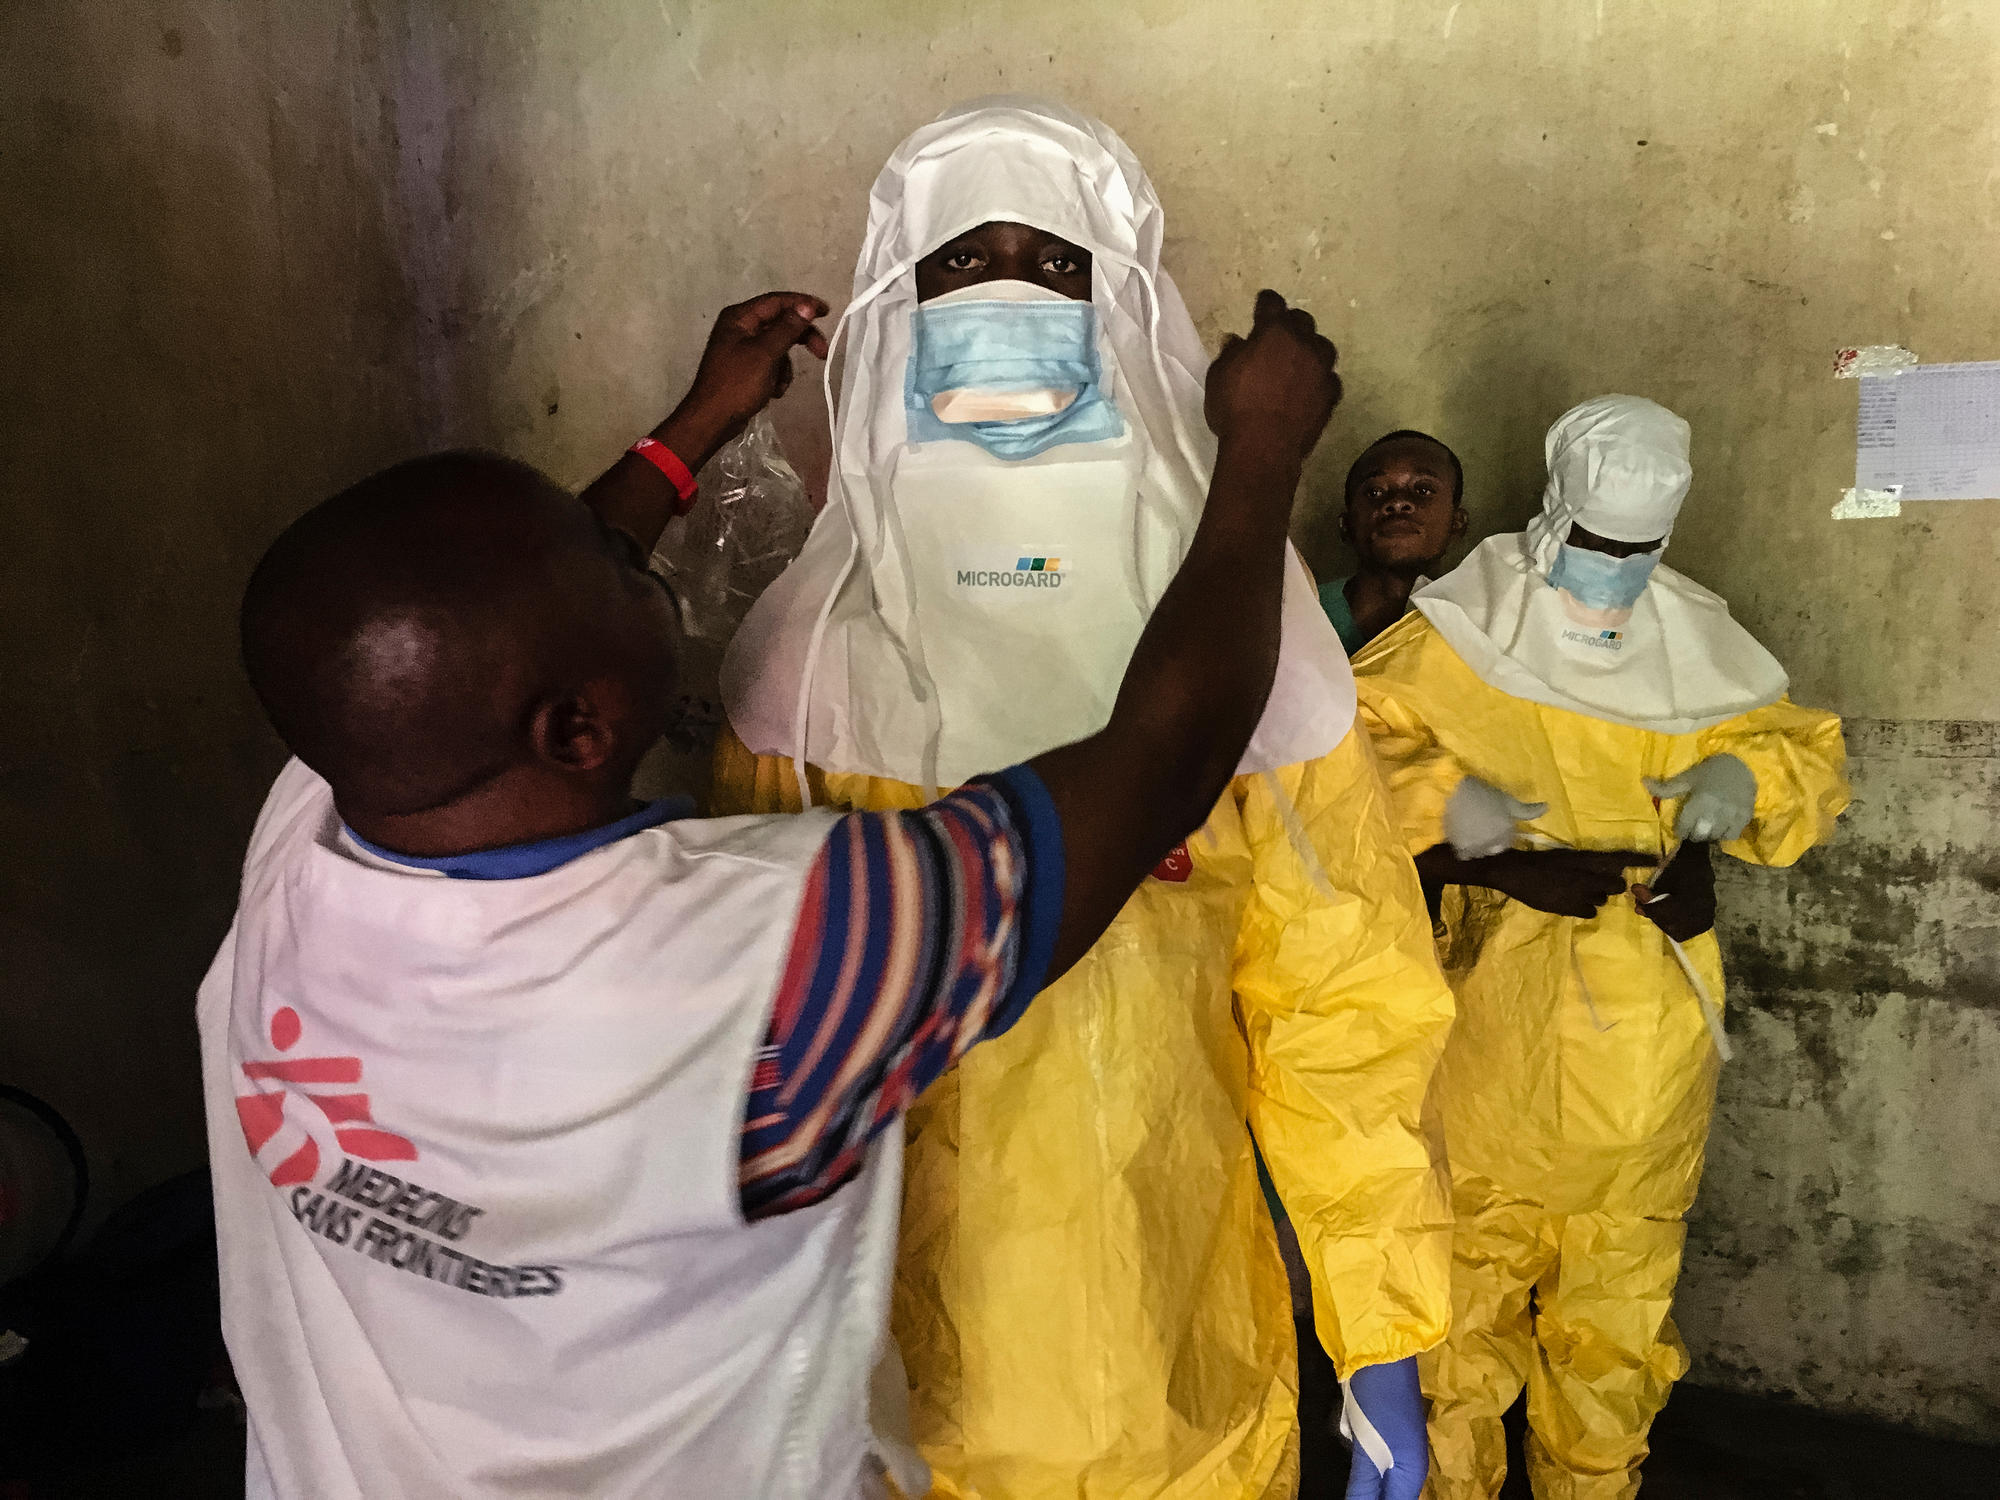 DRC: MSF begins Ebola vaccination trial in Bikoro to help curb outbreak